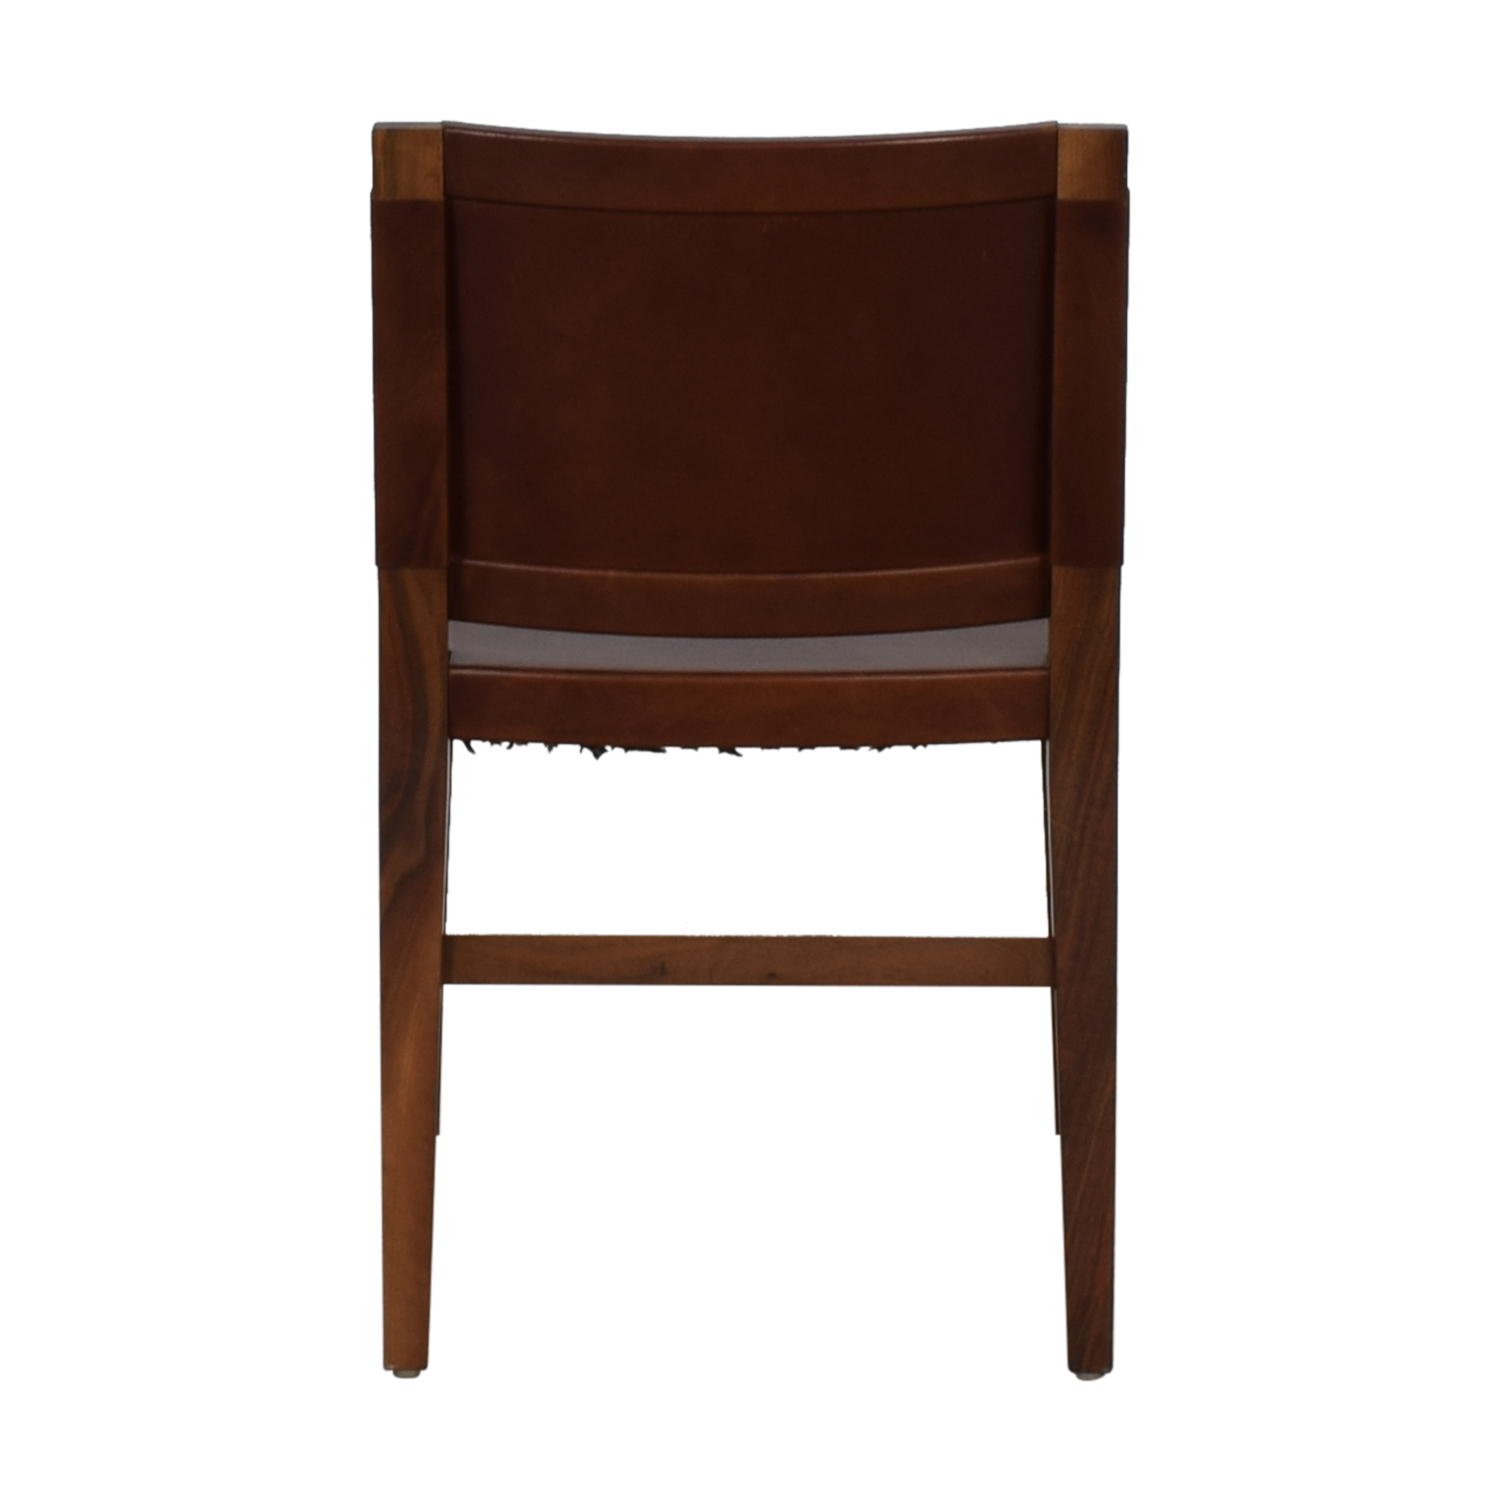 Furniture Masters Furniture Masters Modern Accent Chair discount